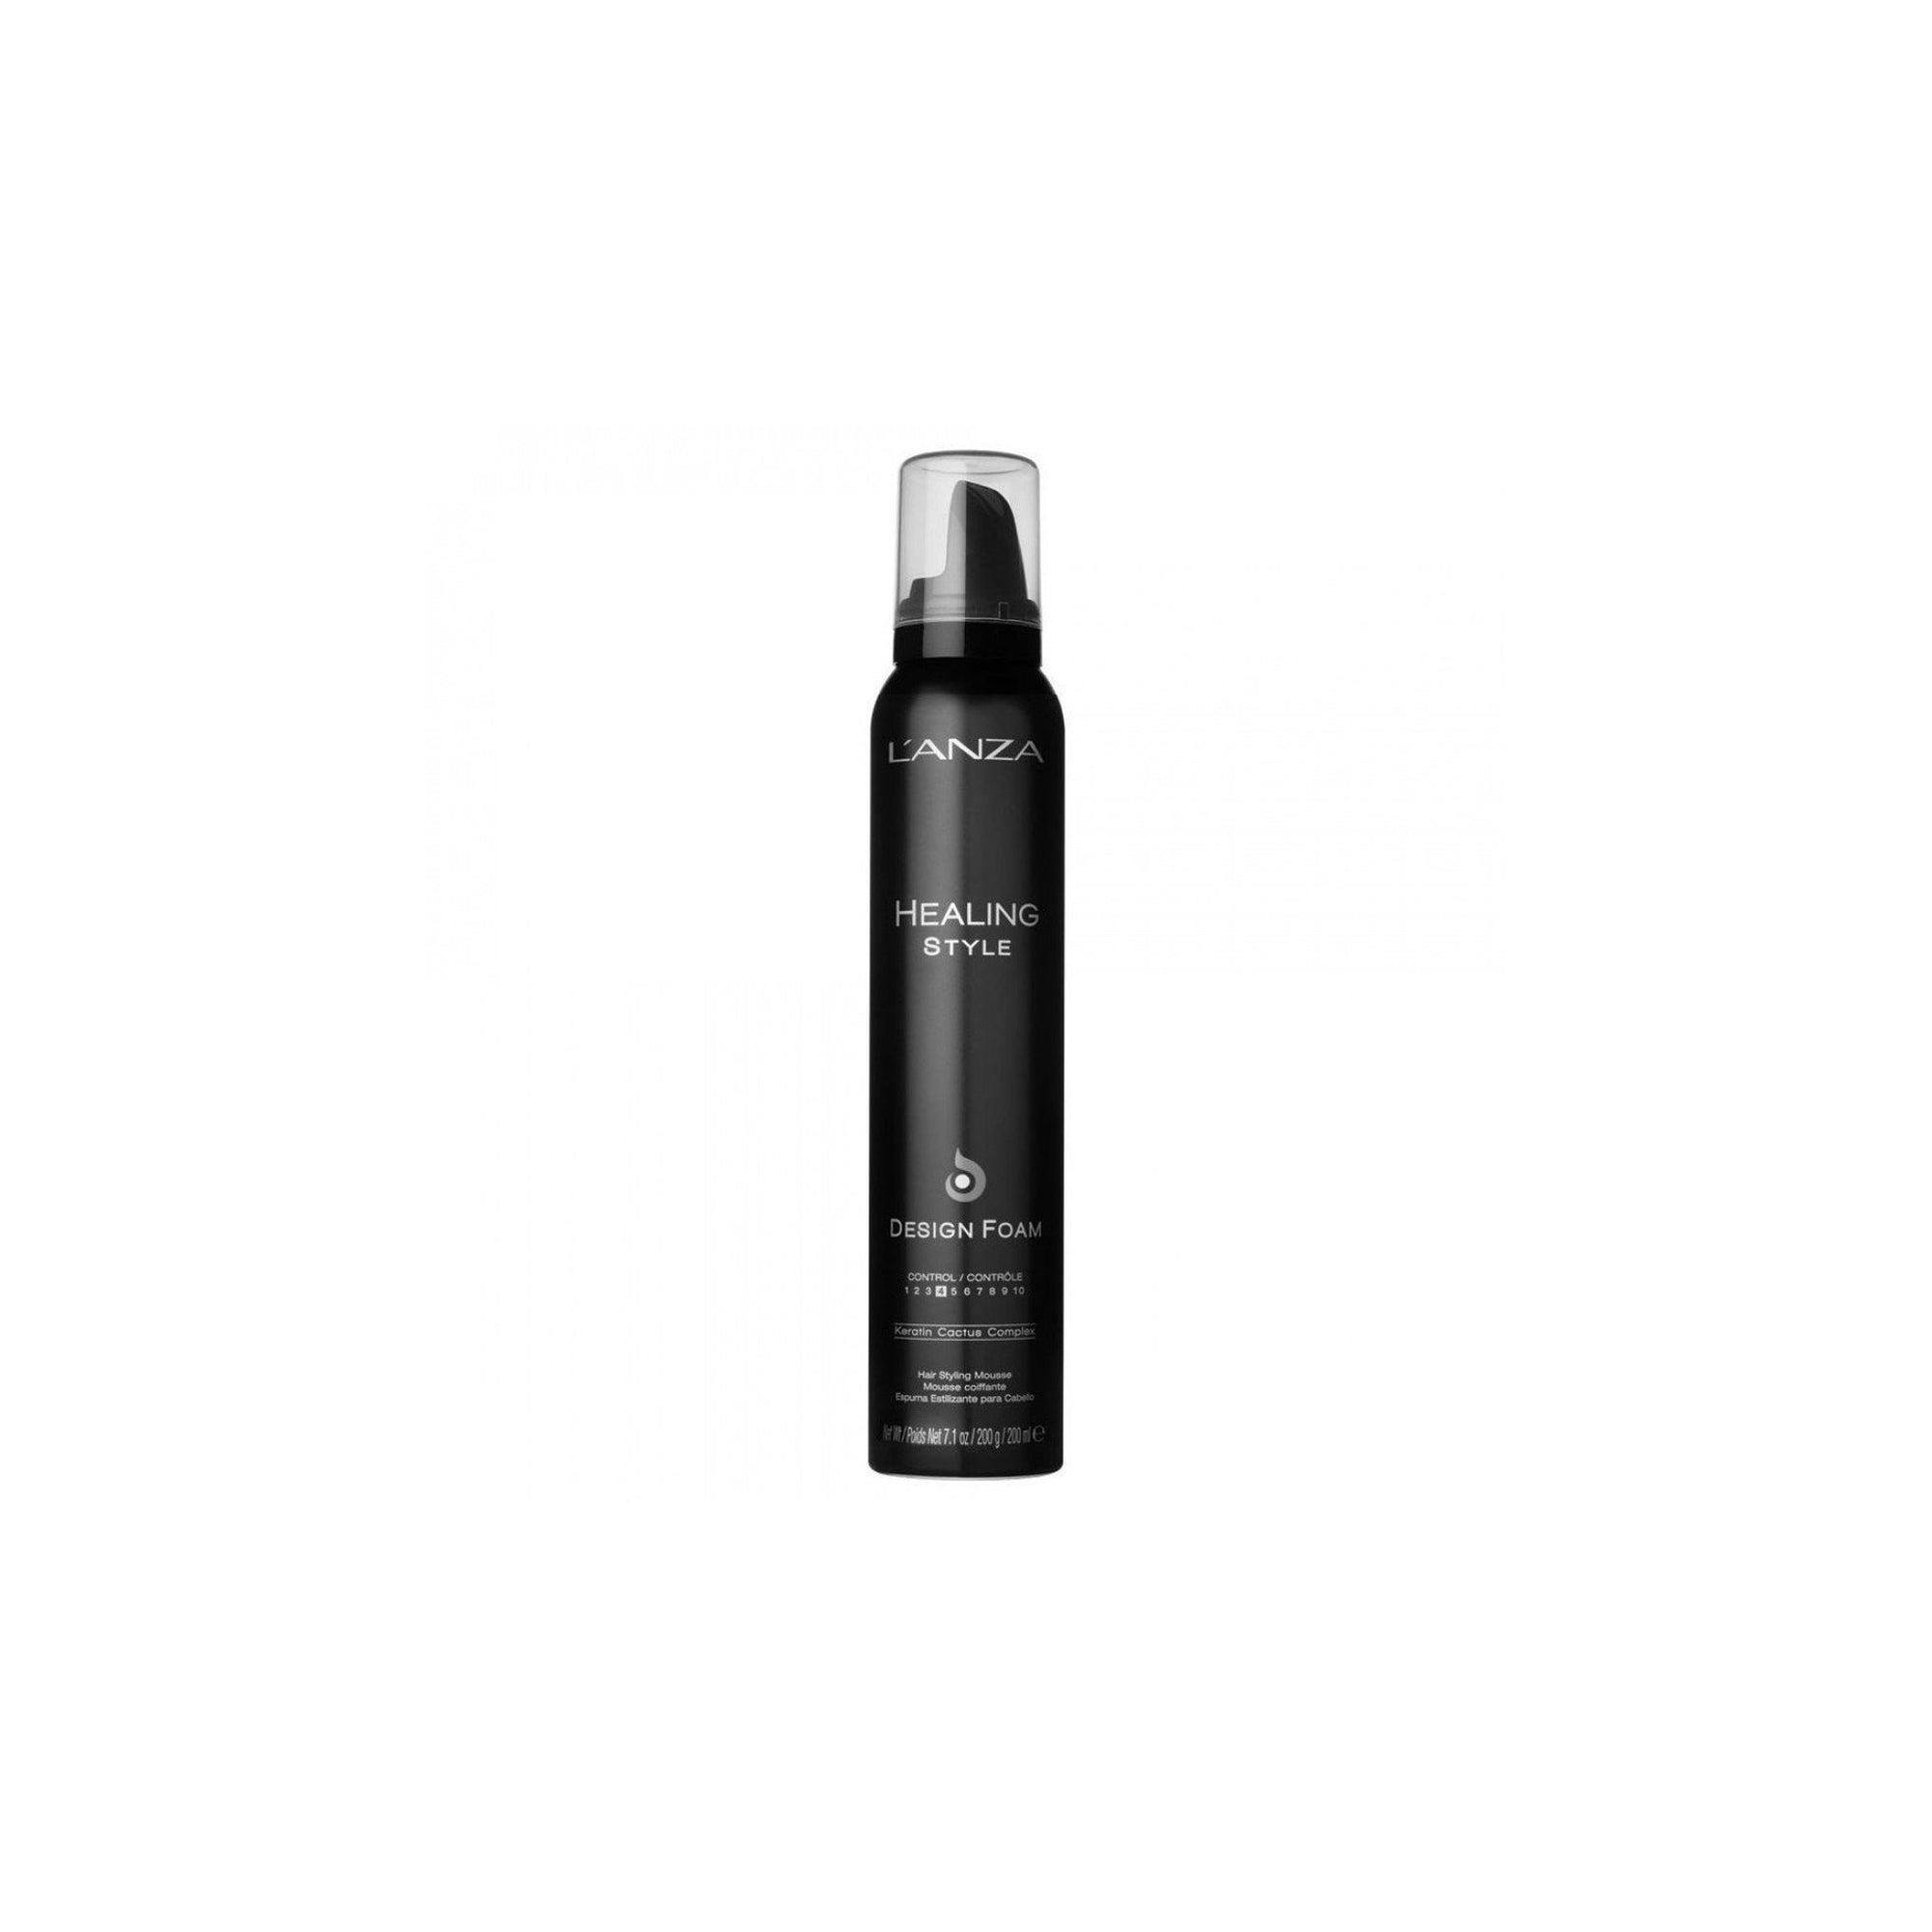 L'Anza Healing Style Design Foam 200ml